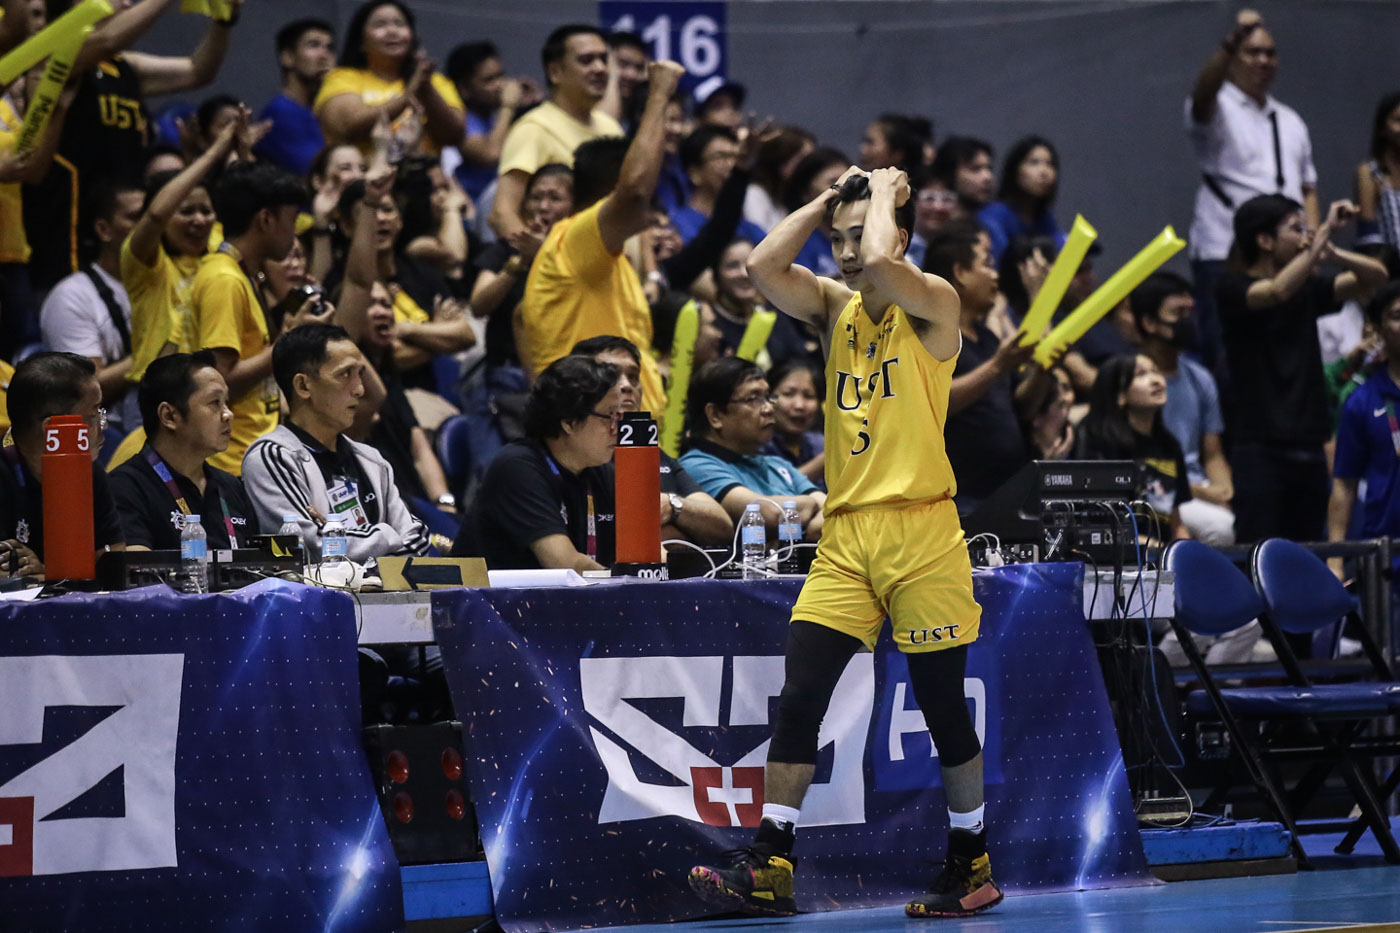 TOO TOUGH. Renzo Subido, UST's semifinal hero against UP, struggles on the floor just like most of his teammates. Photo by Josh Albelda/Rappler